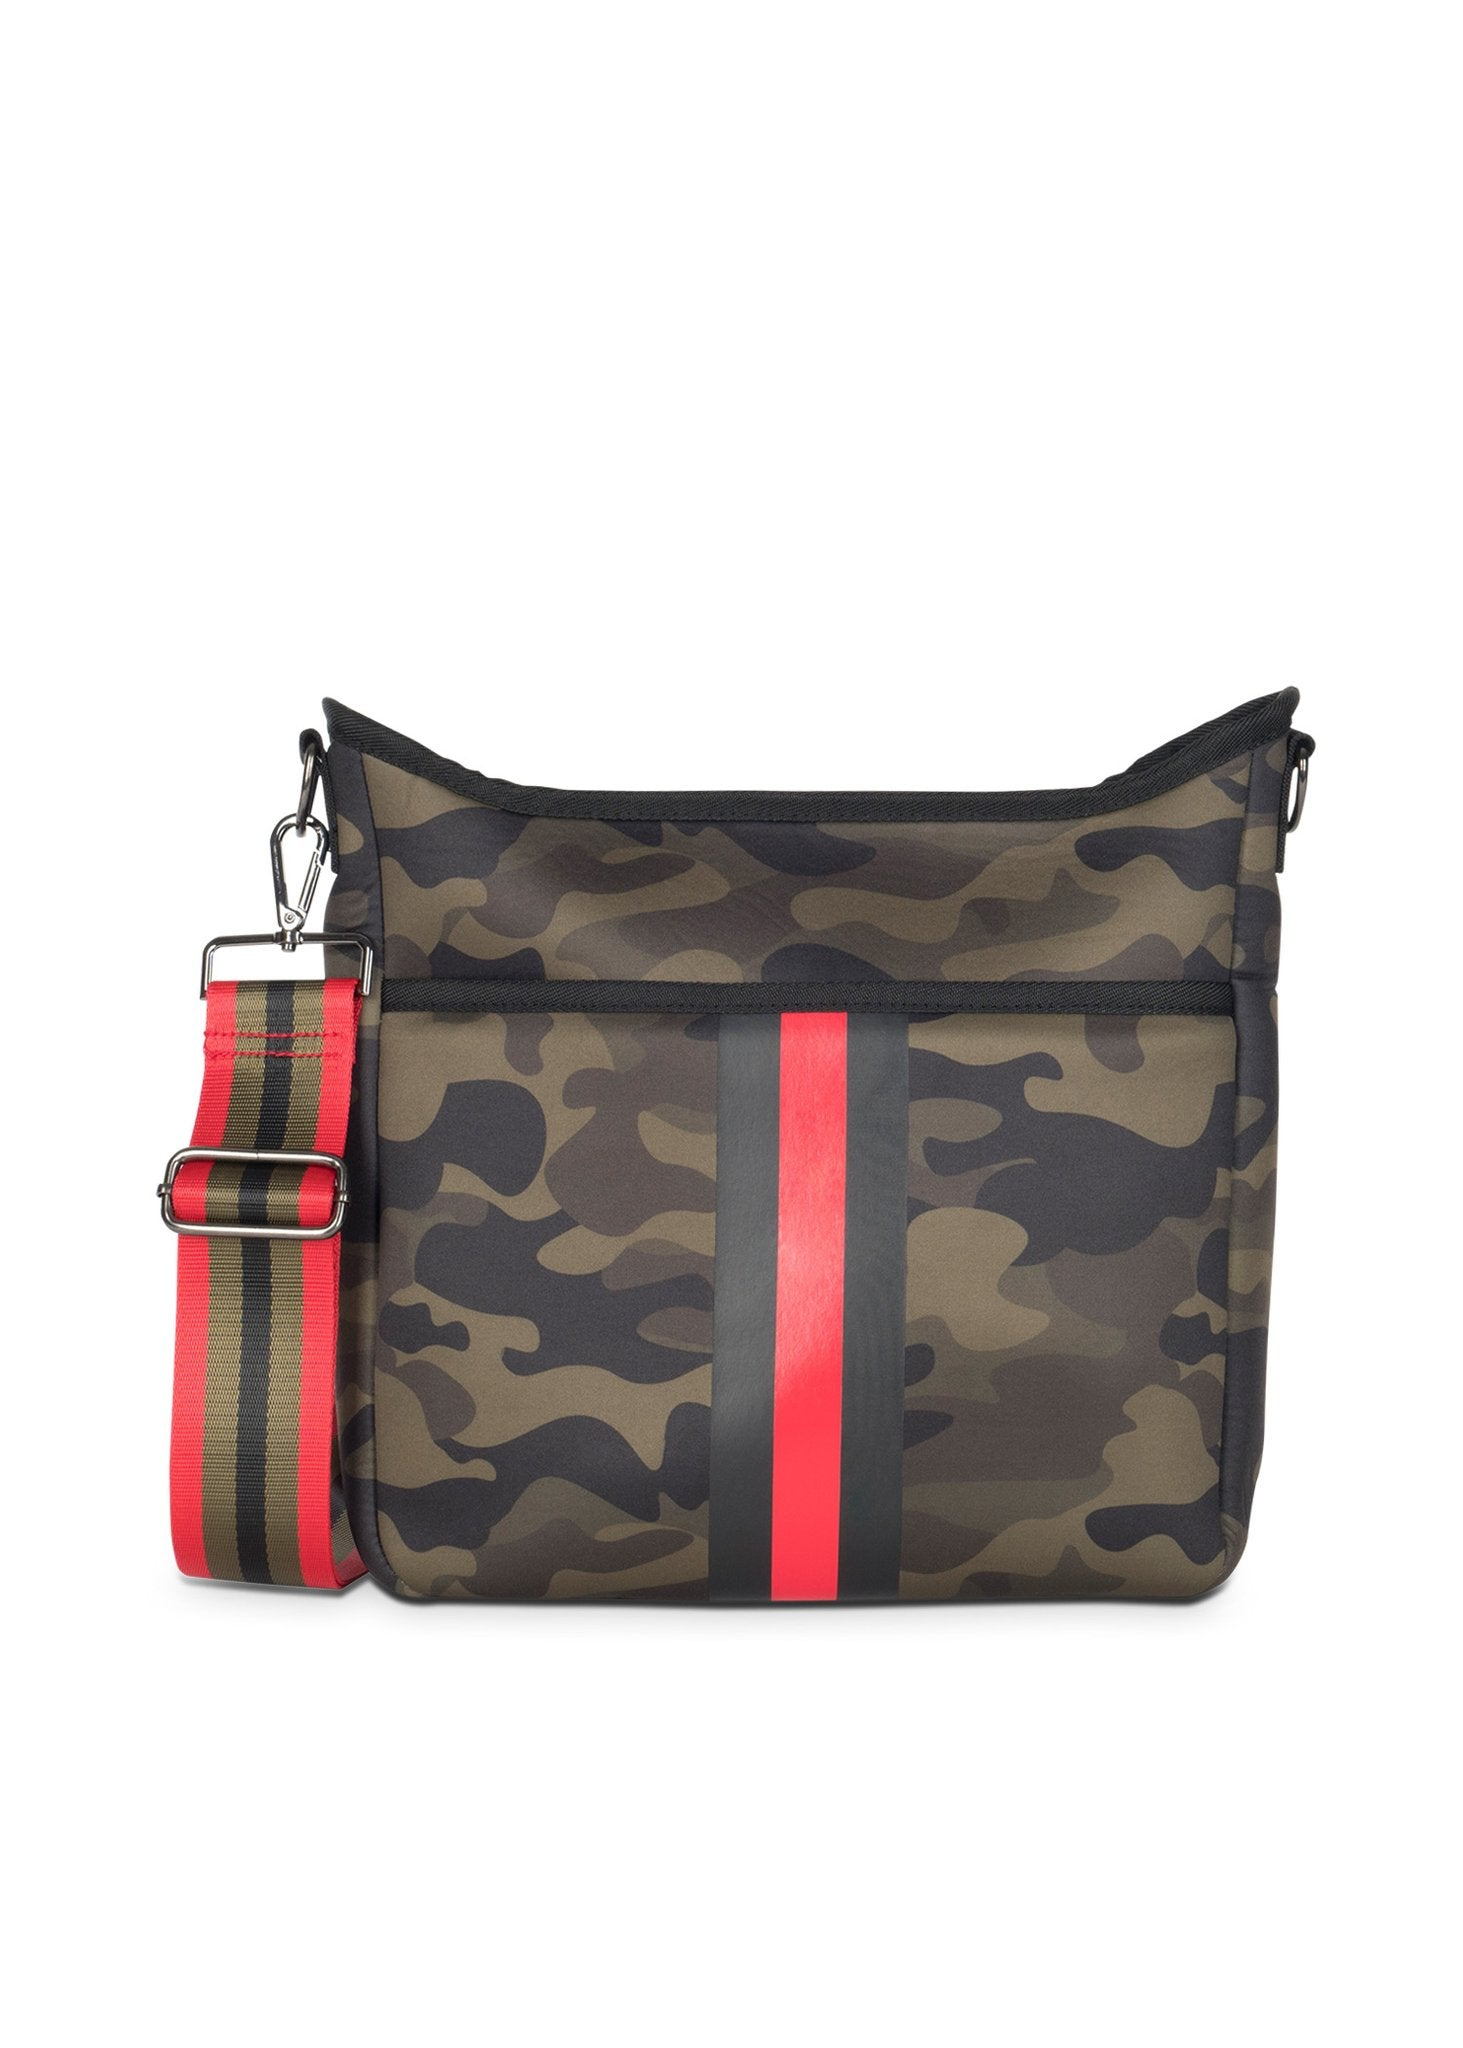 Haute Shore - Blake Brat Cross Body (Blake, Camo Green w/Black & Red Stripe)